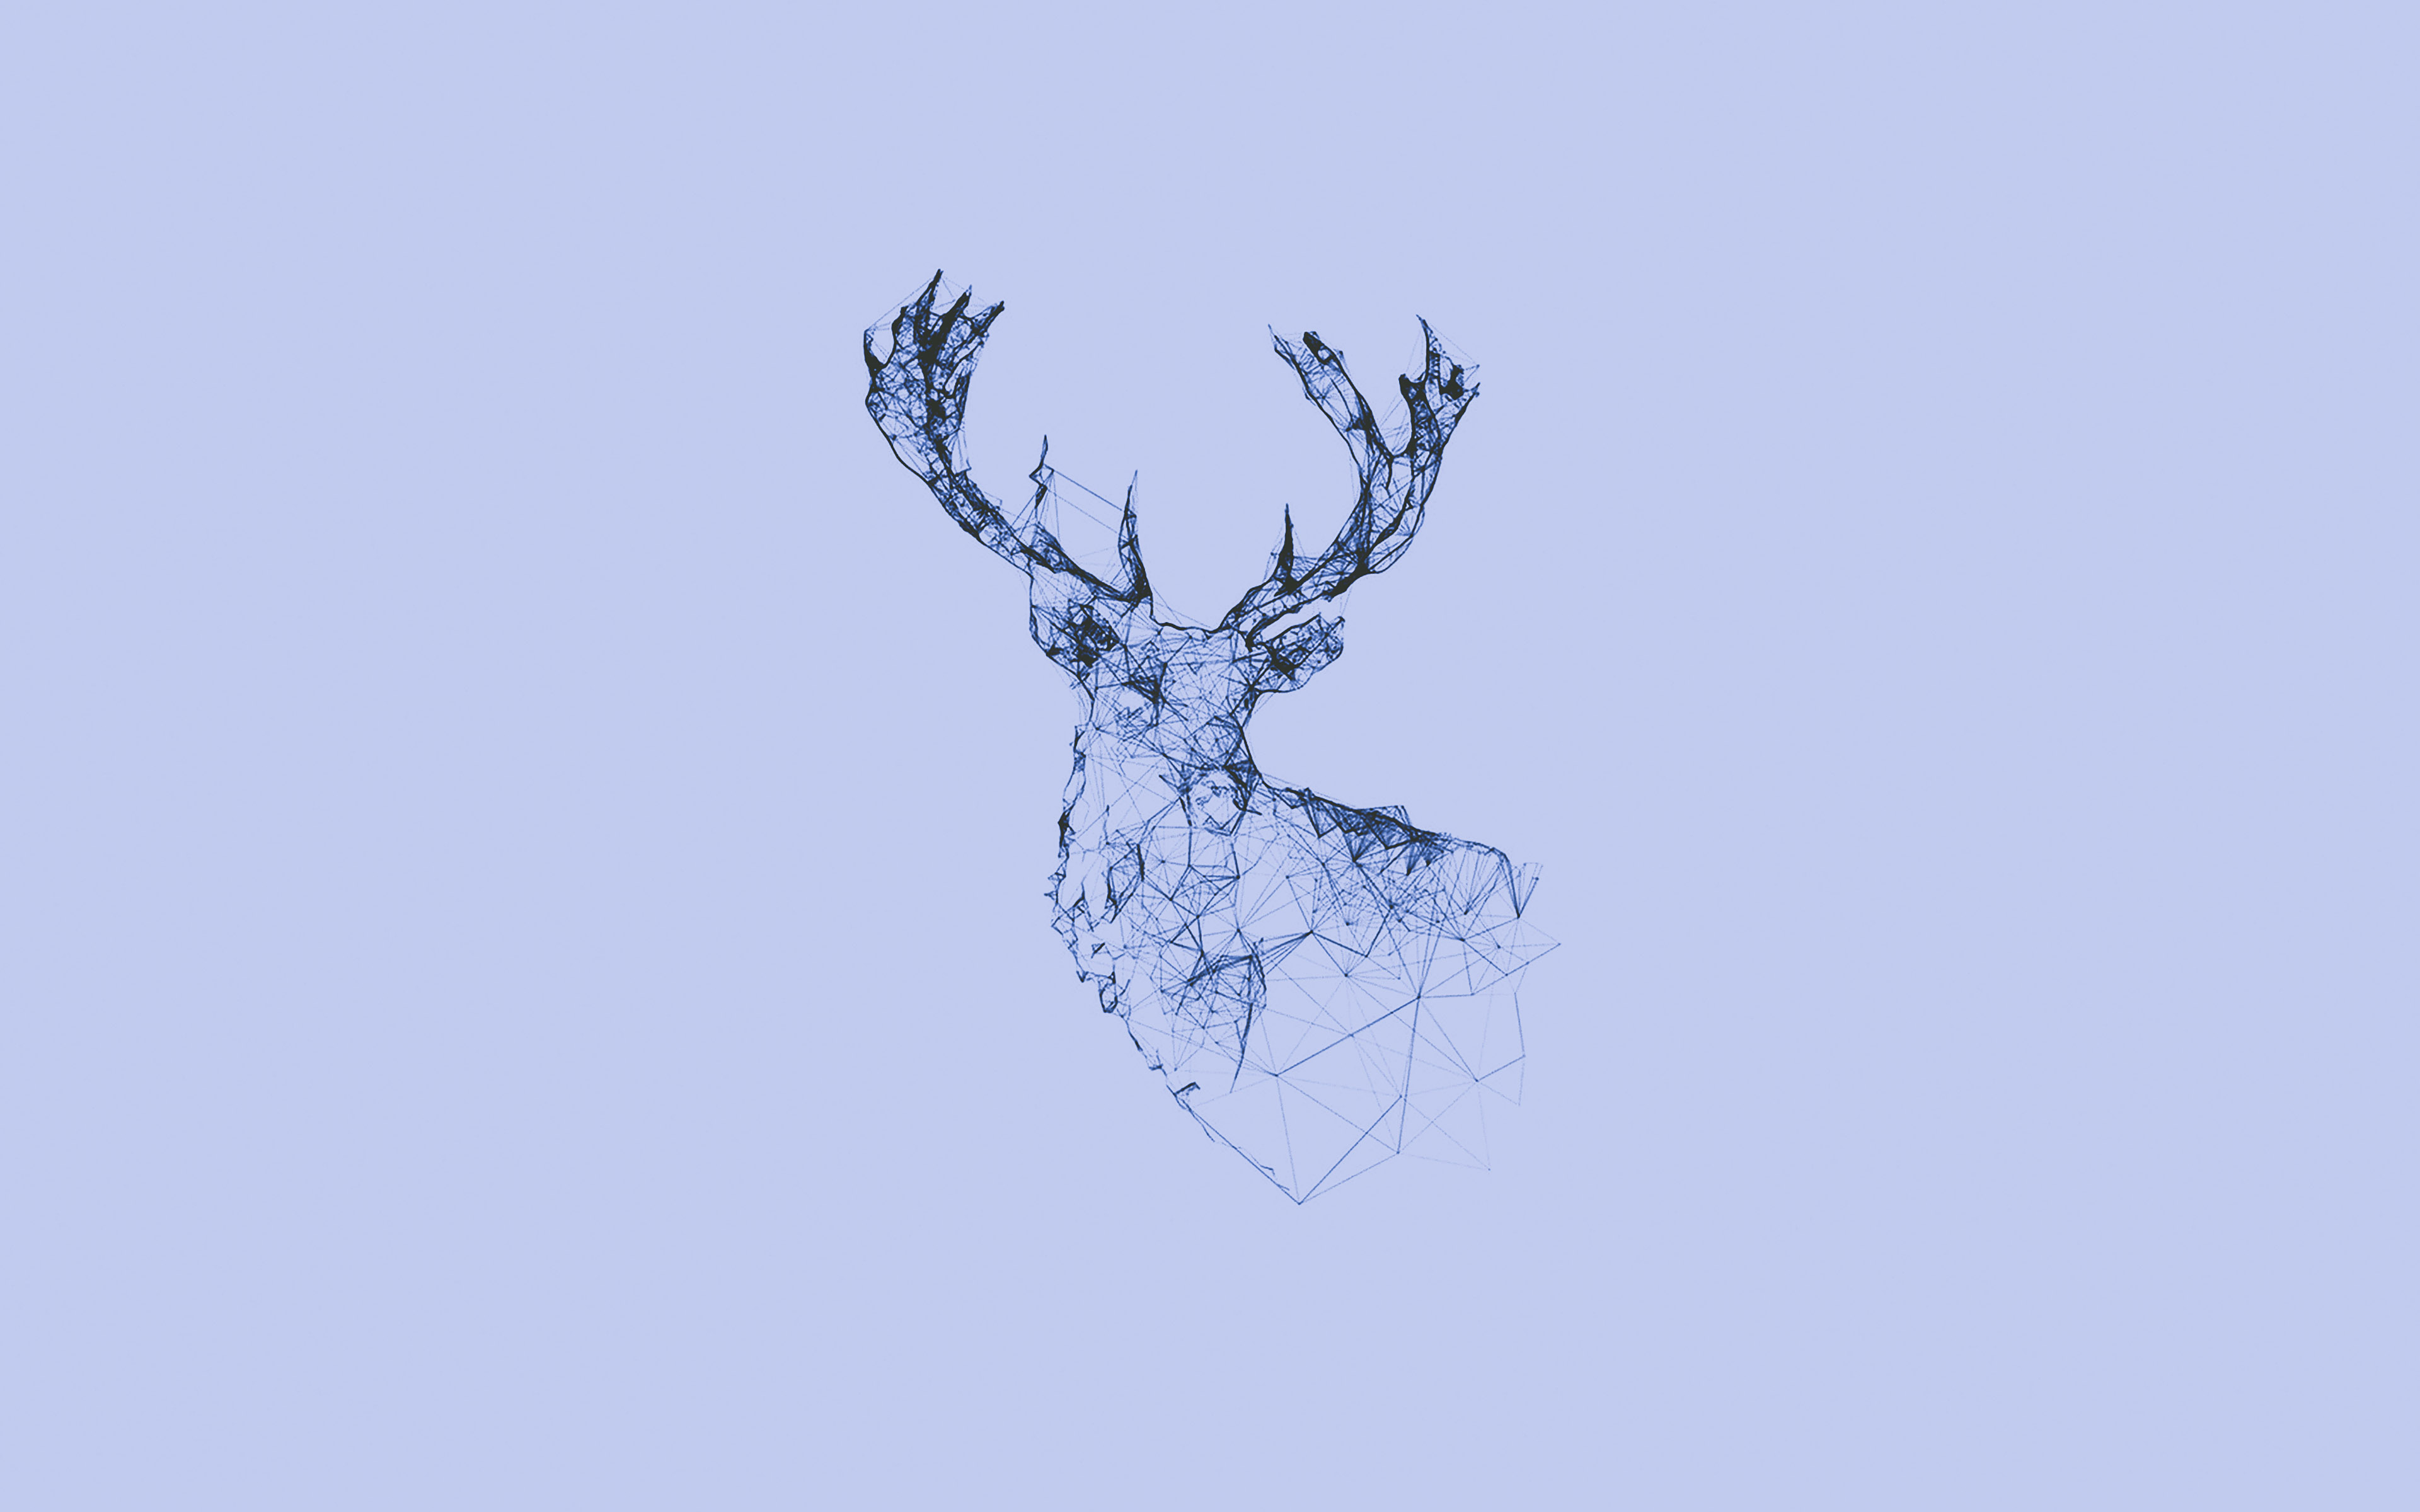 Fall Wallpaper Ipad Air 2 Ad30 Deer Animal Illust Blue Papers Co